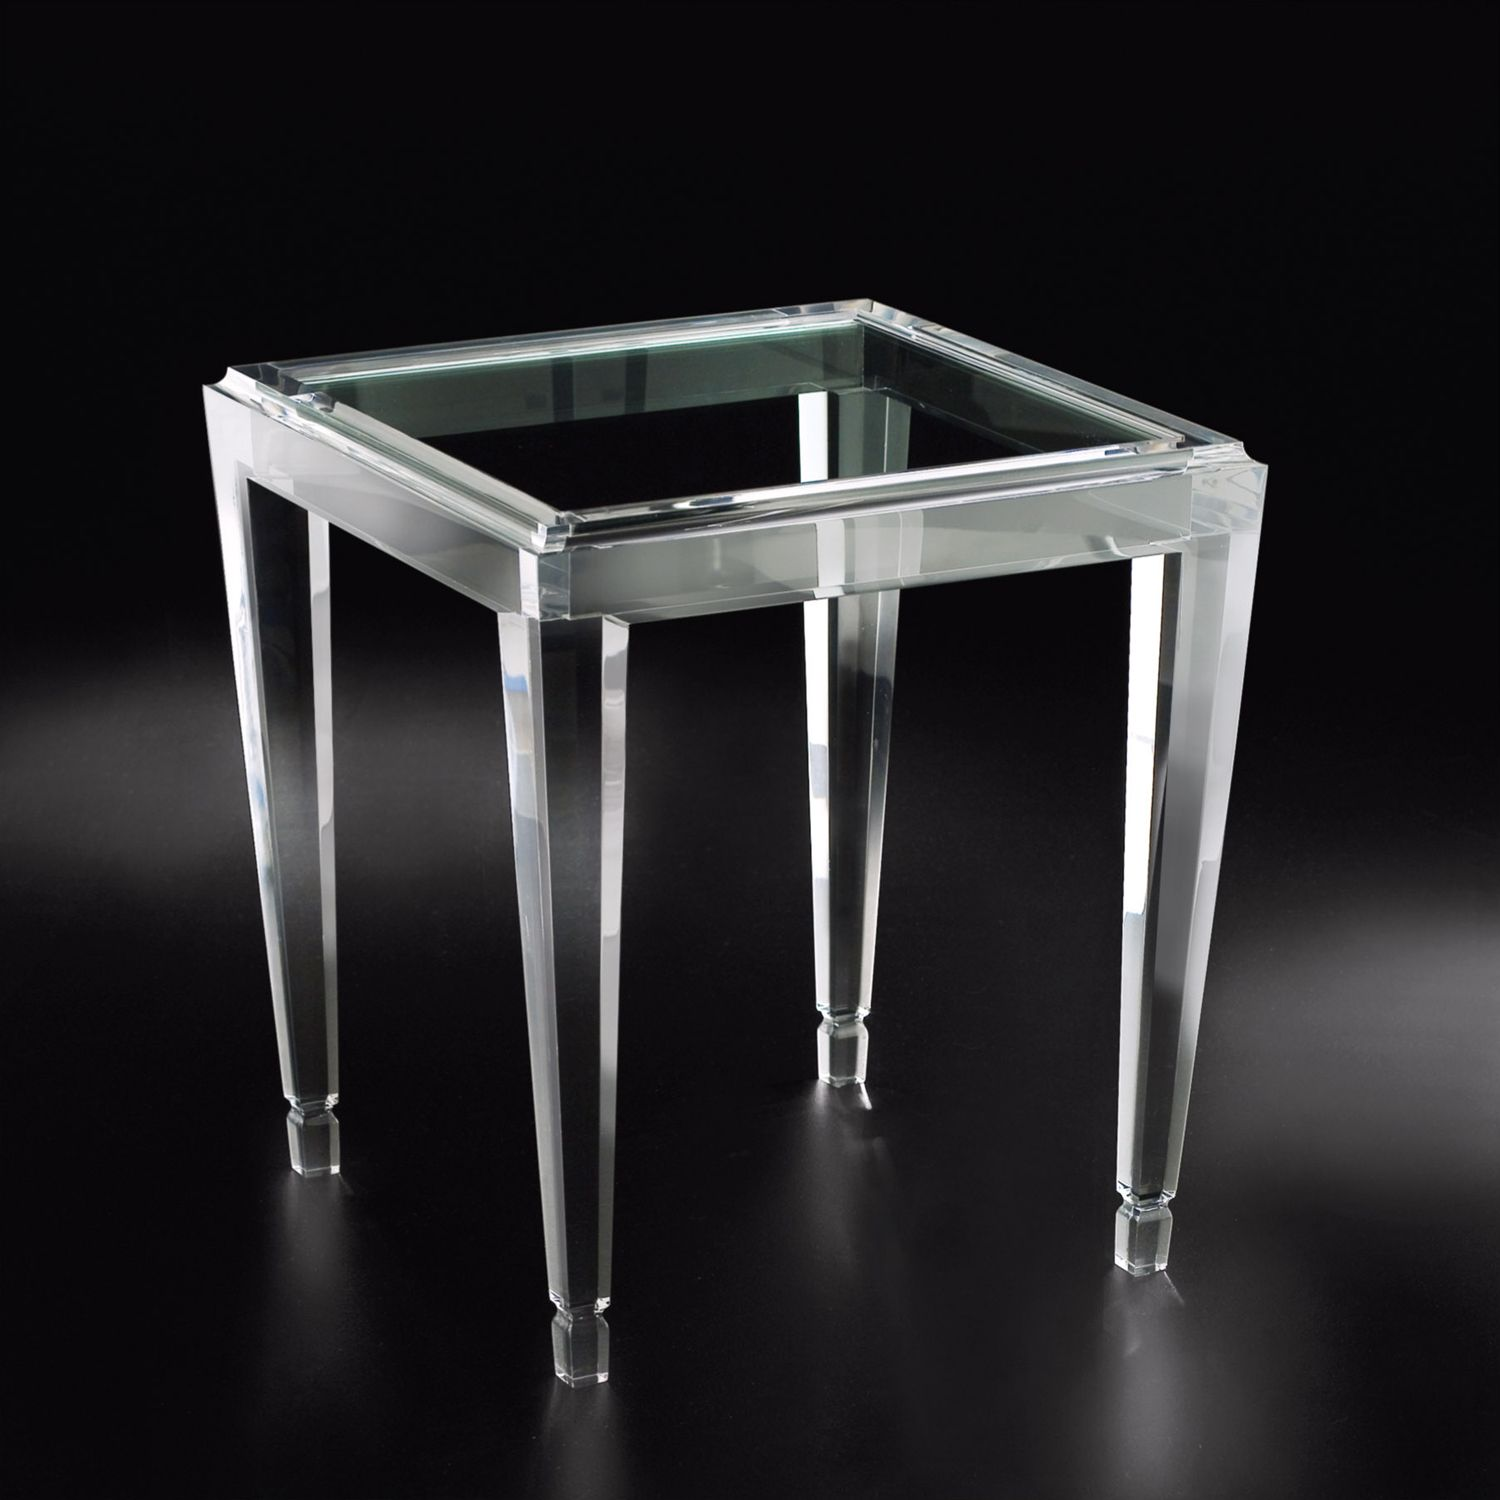 acrylic furniture legs. Allan Knight Acrylic Gold Palm End Table Square Furniture Legs